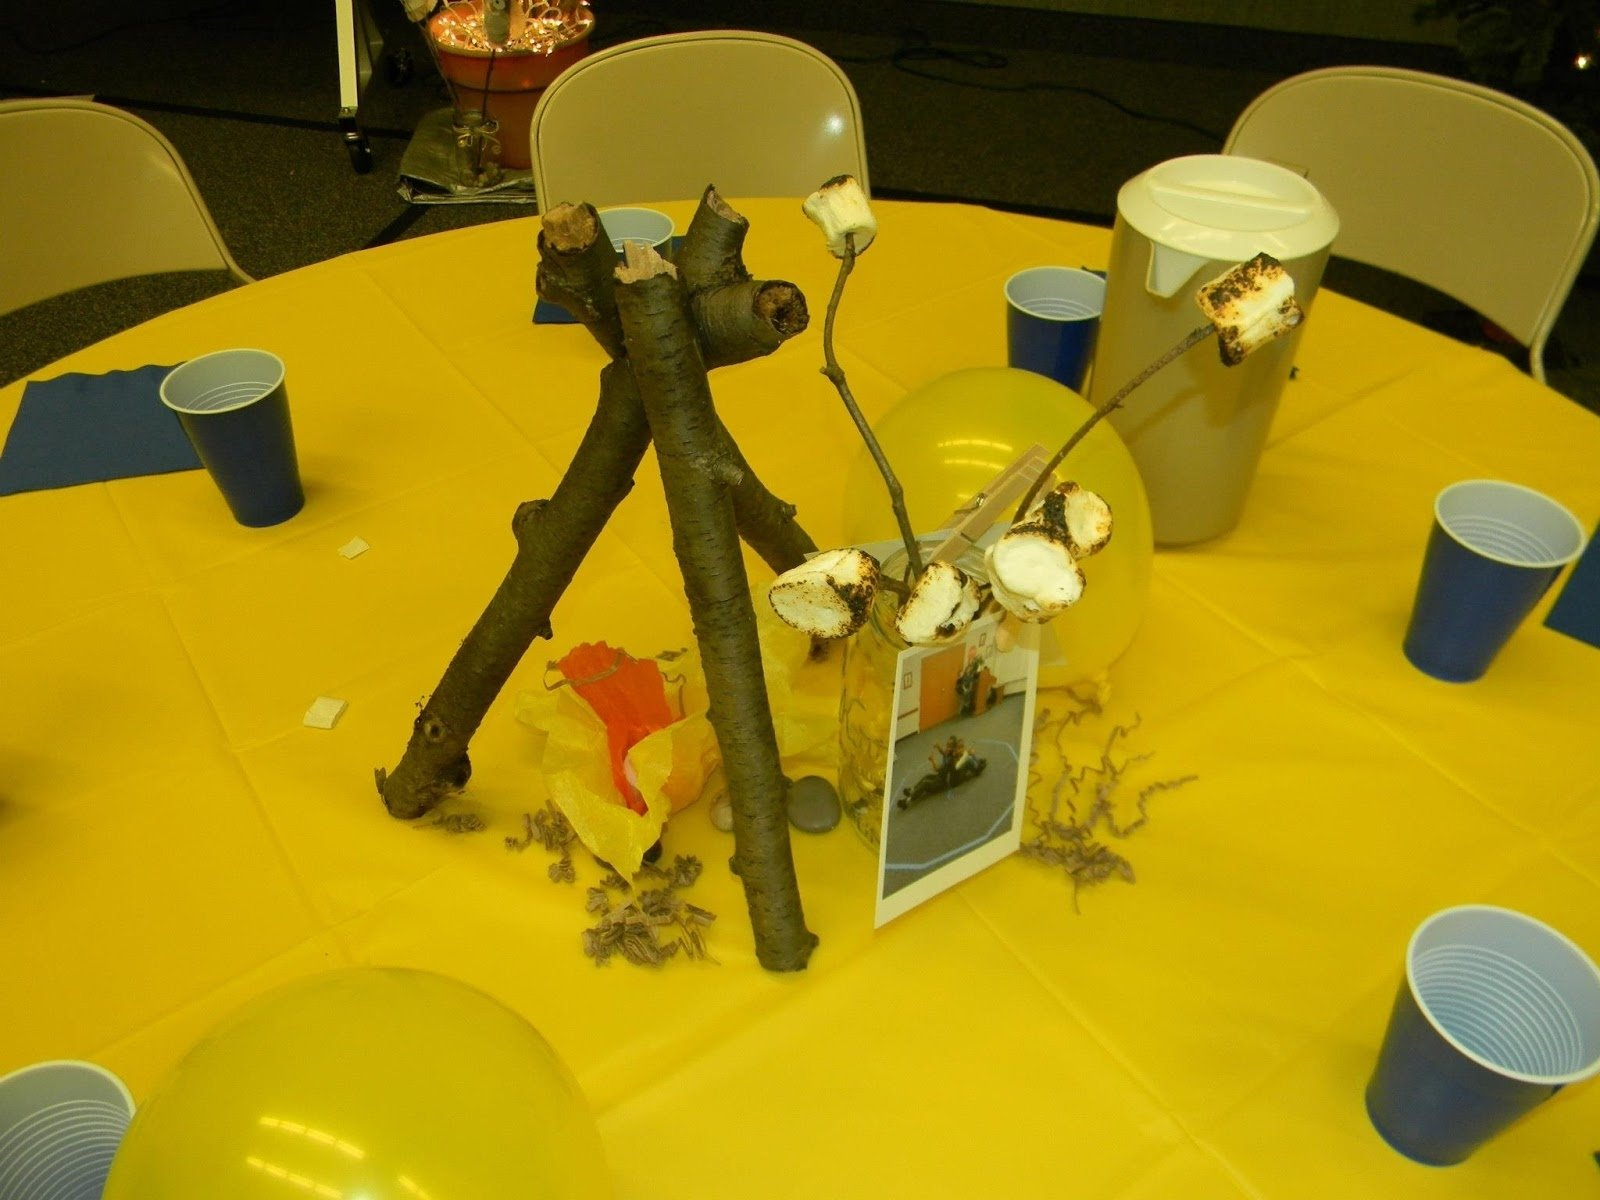 10 Stylish Cub Scout Blue And Gold Banquet Ideas controlling craziness blue and gold banquet 1 2020